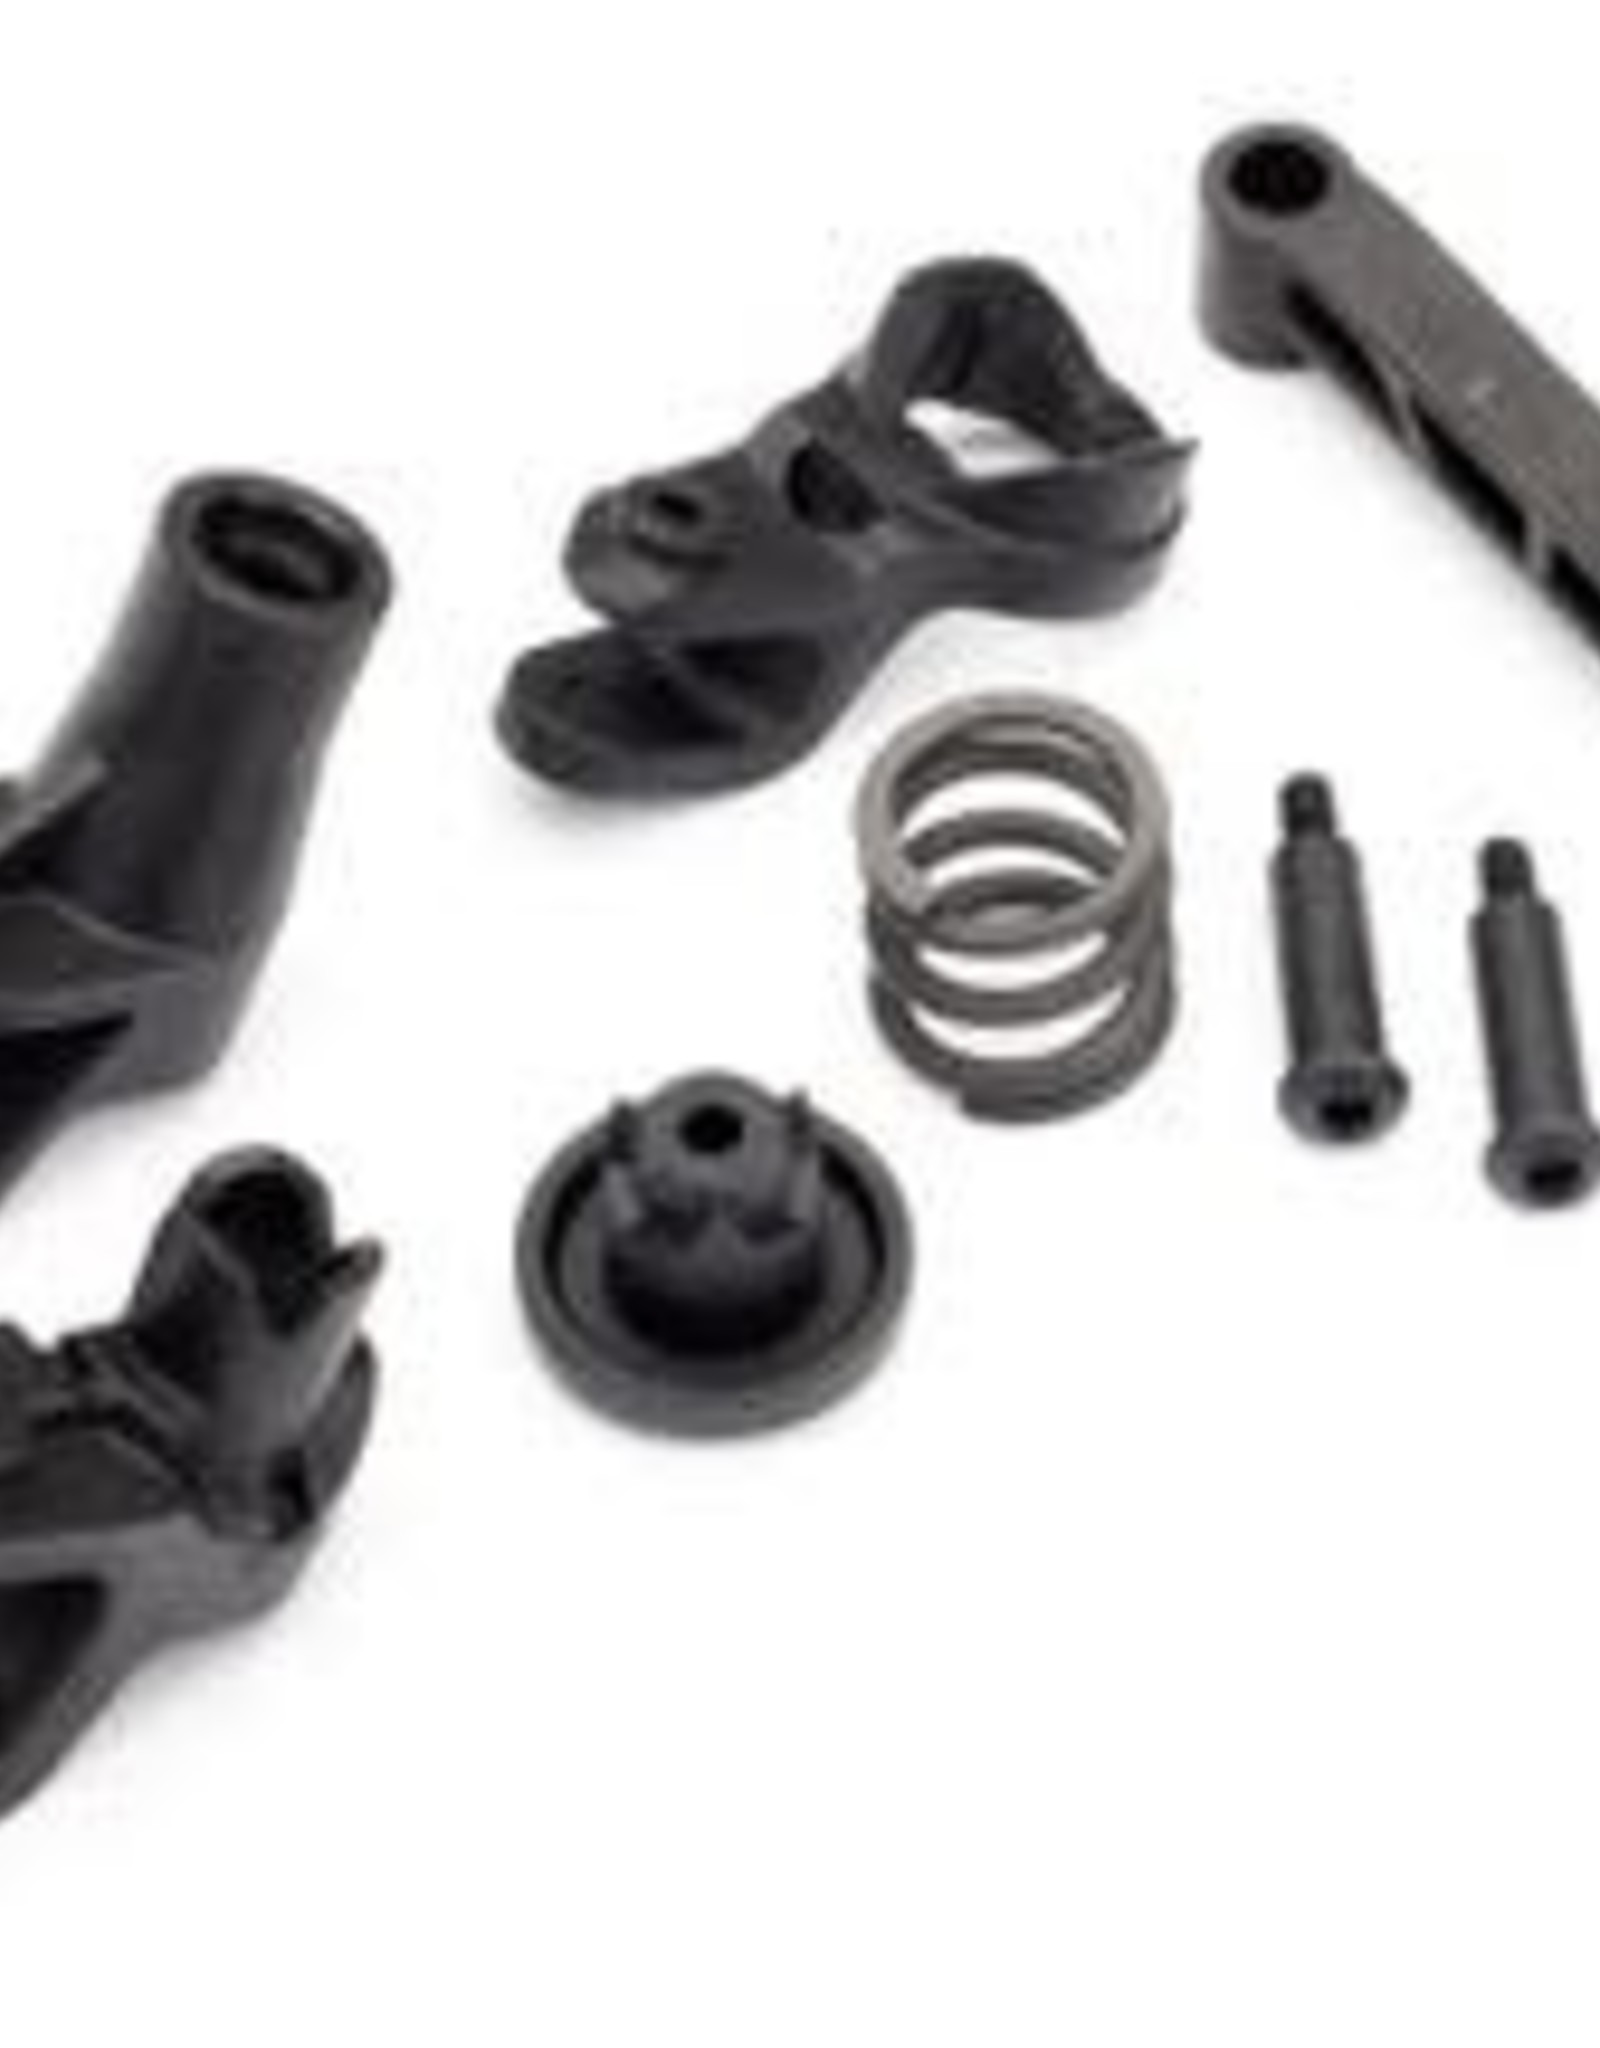 TRAXXAS STEERING BELLCRANK/SUPPRT MAXX